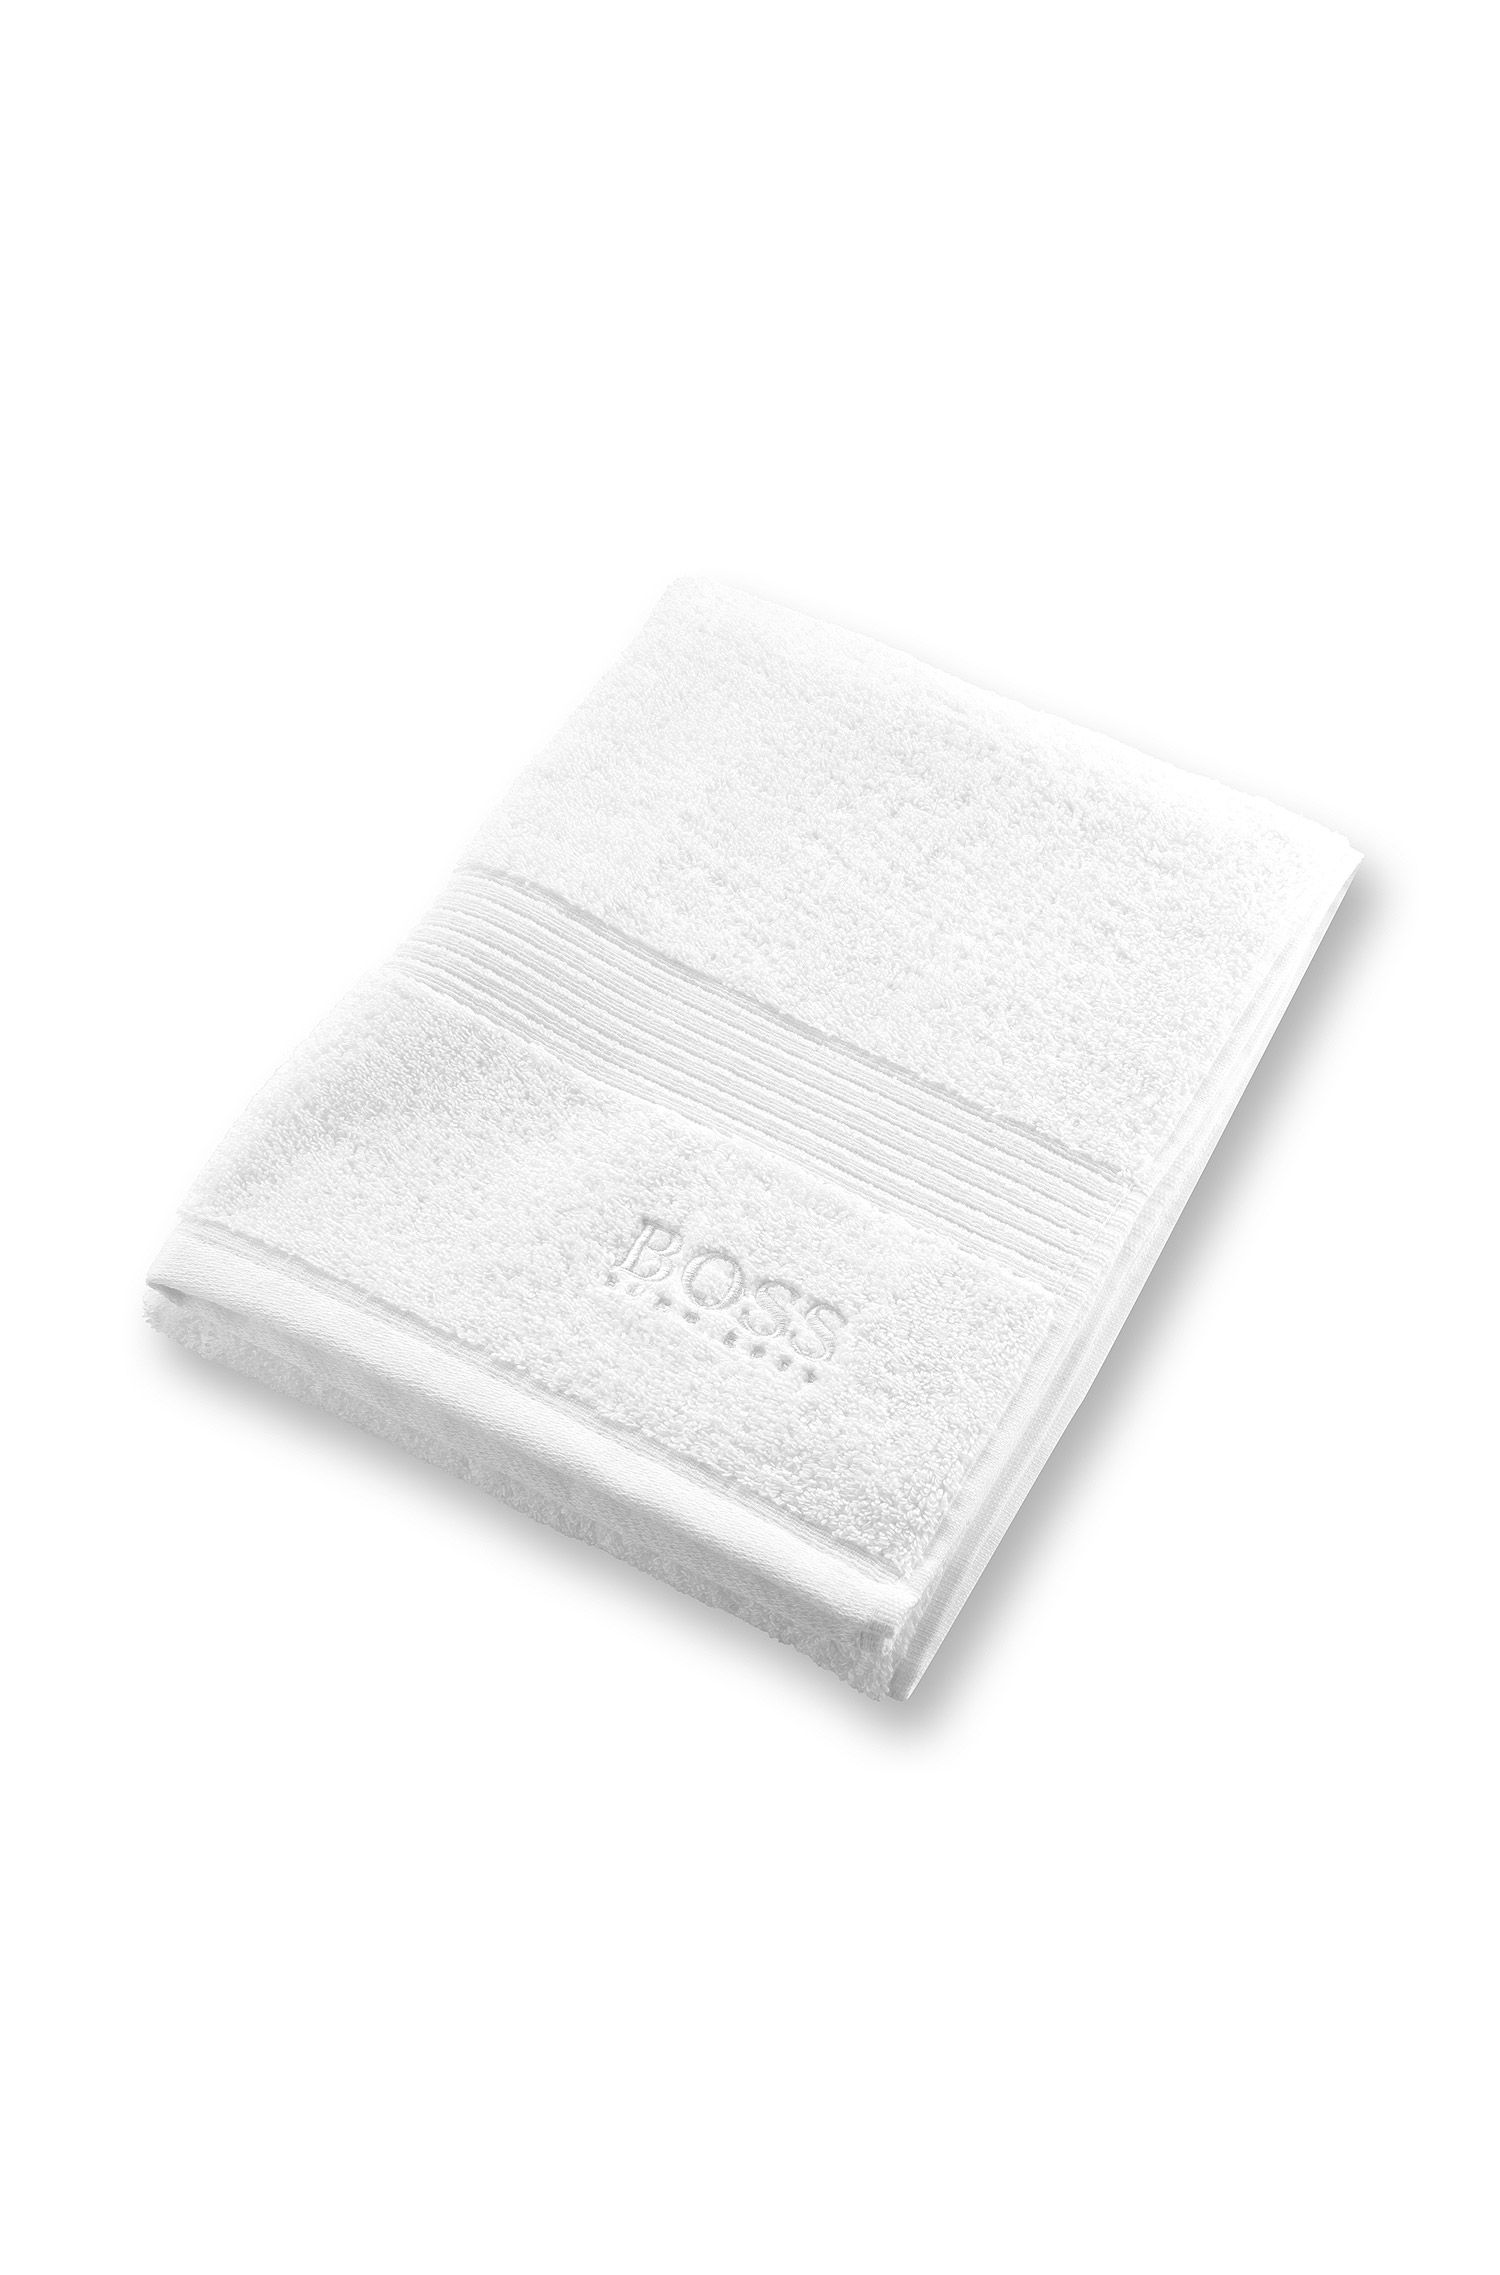 Hand towel ´Loft Serviette toile`, cotton terry